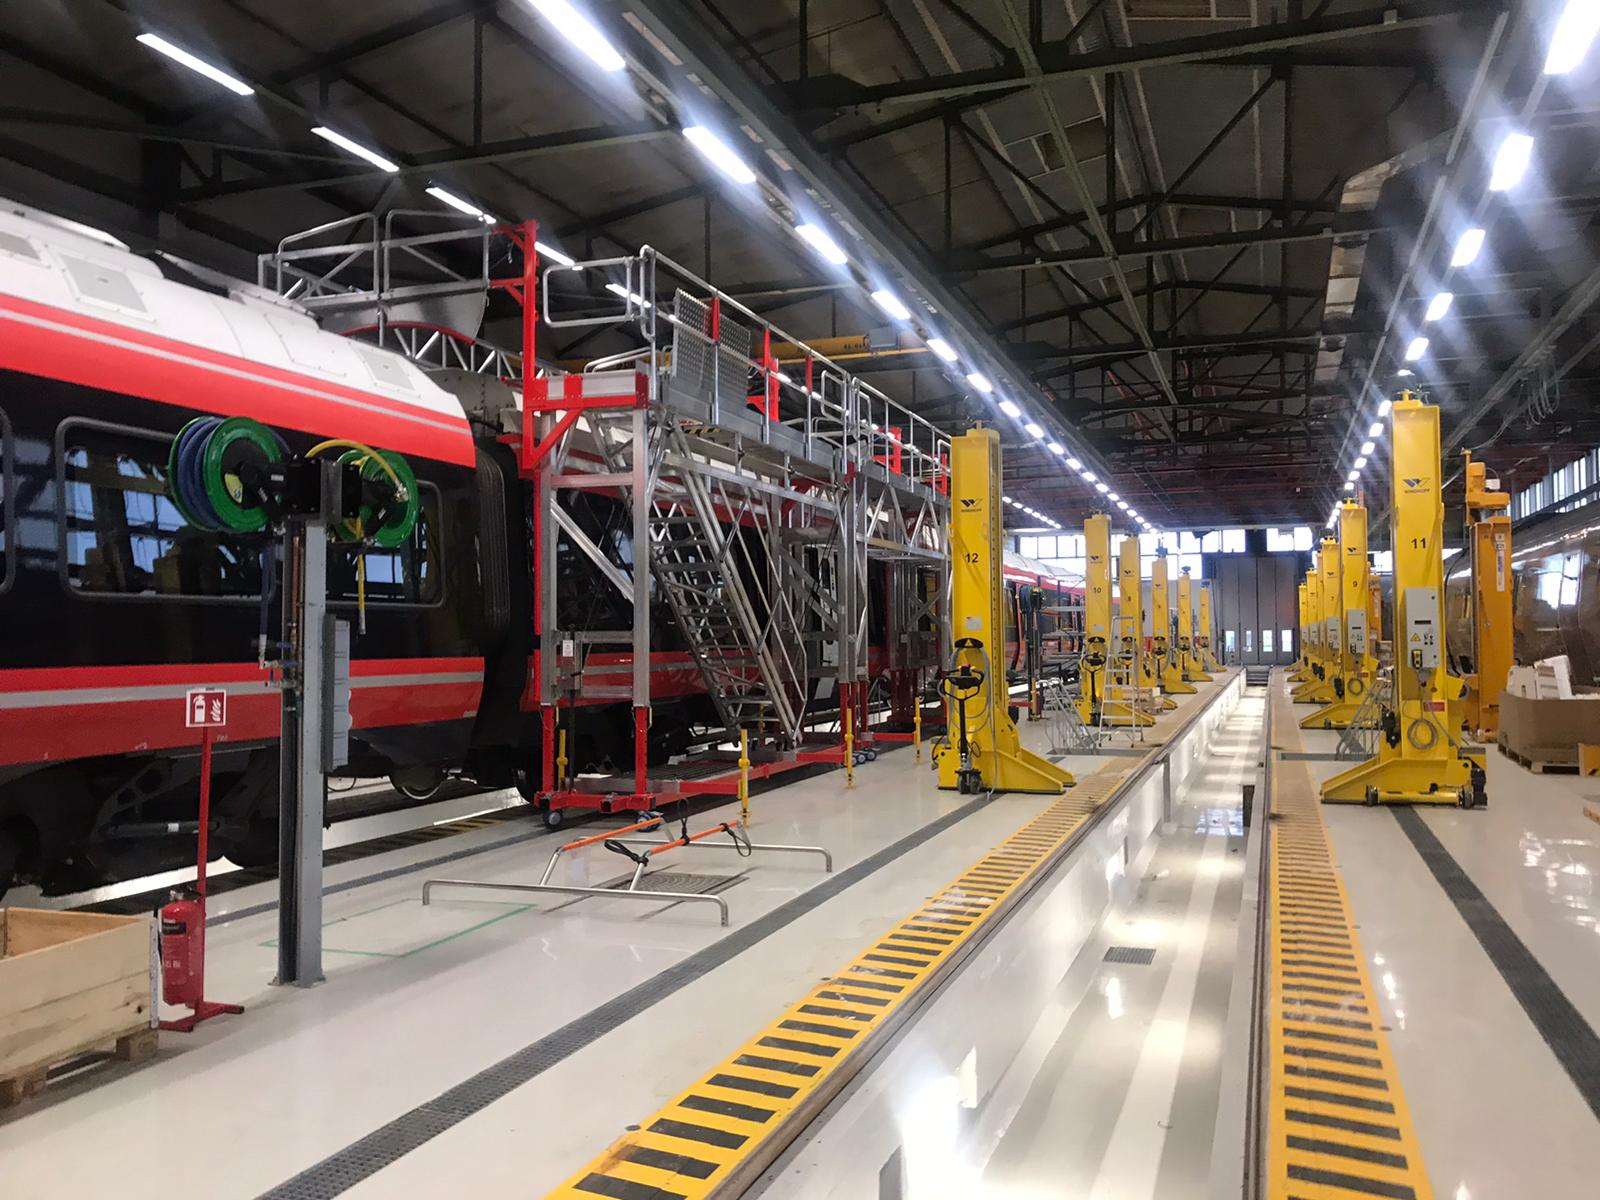 ALSTOM: Supplying working at height and side access solutions  in a restricted workshop space